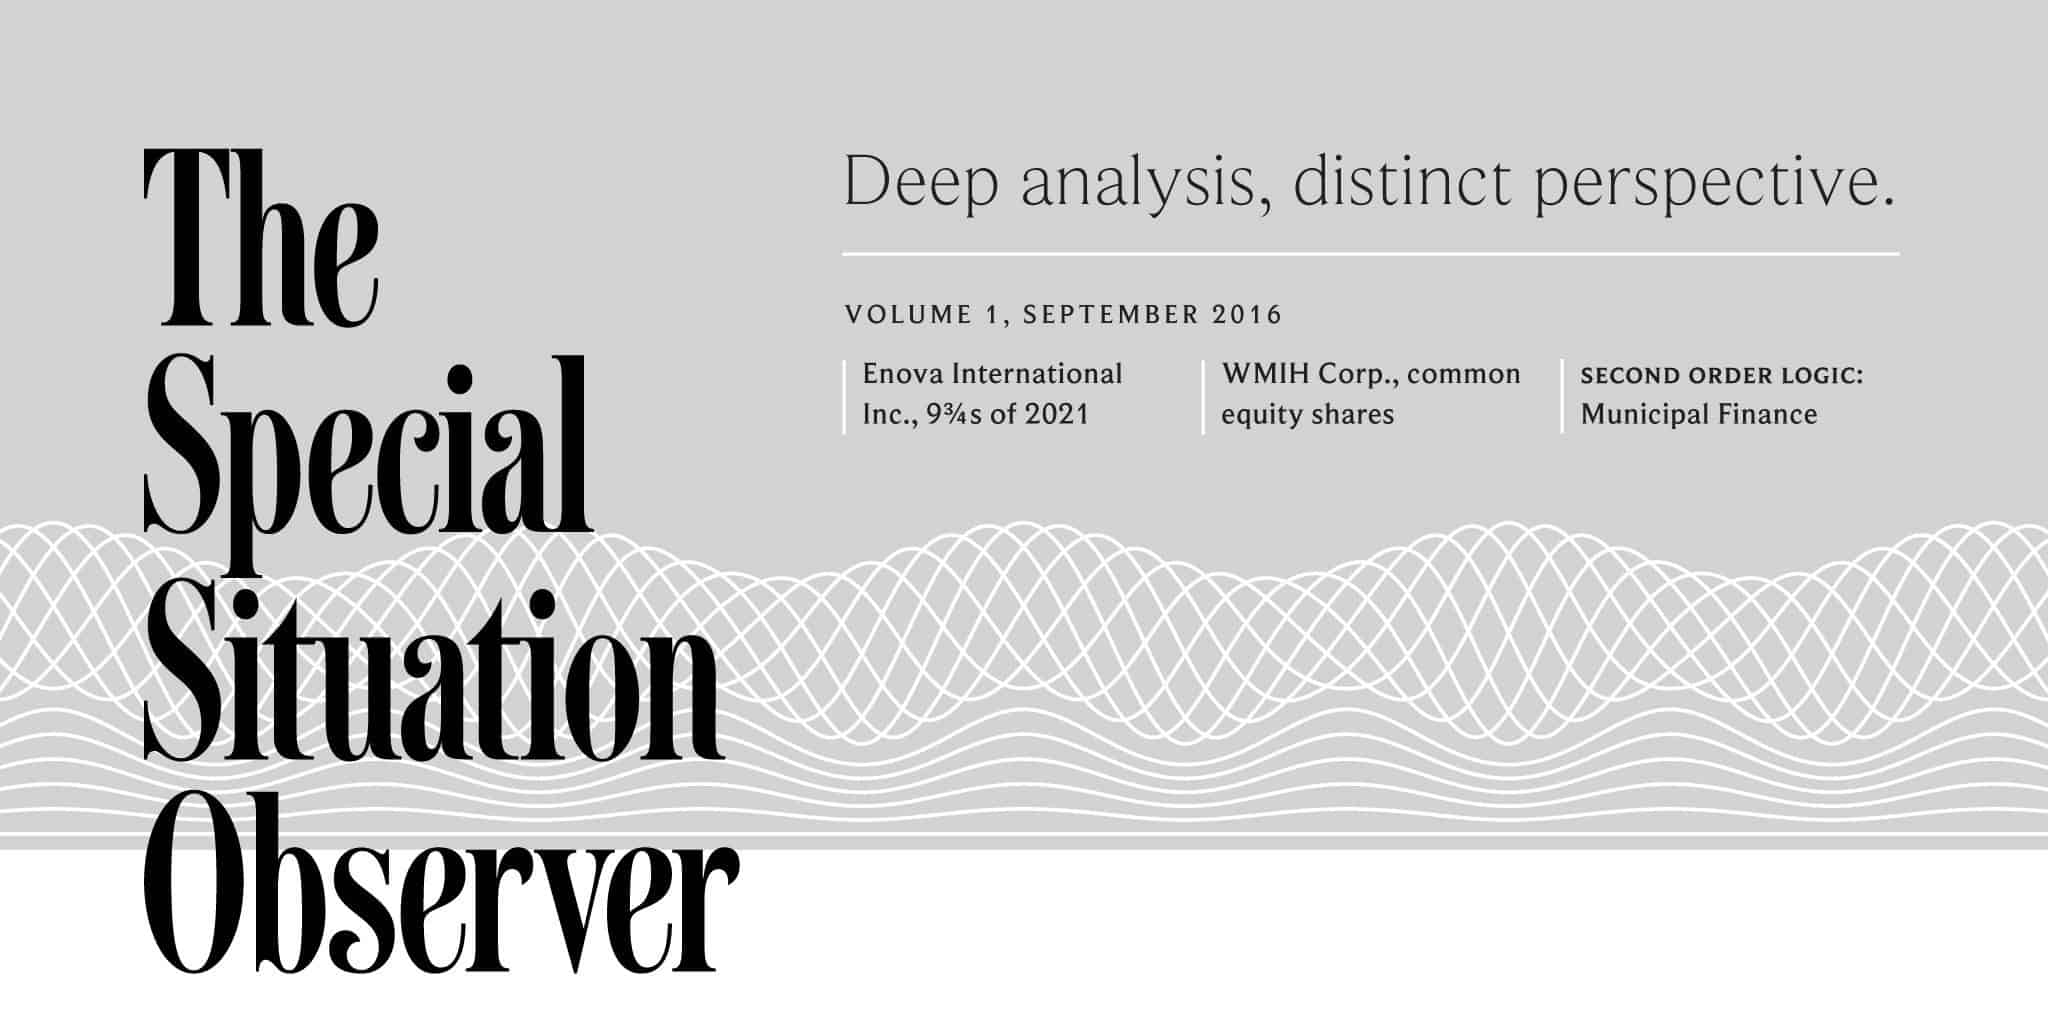 Masthead design and typography for The Special Situation Observer | Designed by Field of Study: A branding and graphic design consultancy | Houston TX | Jennifer Blanco & John